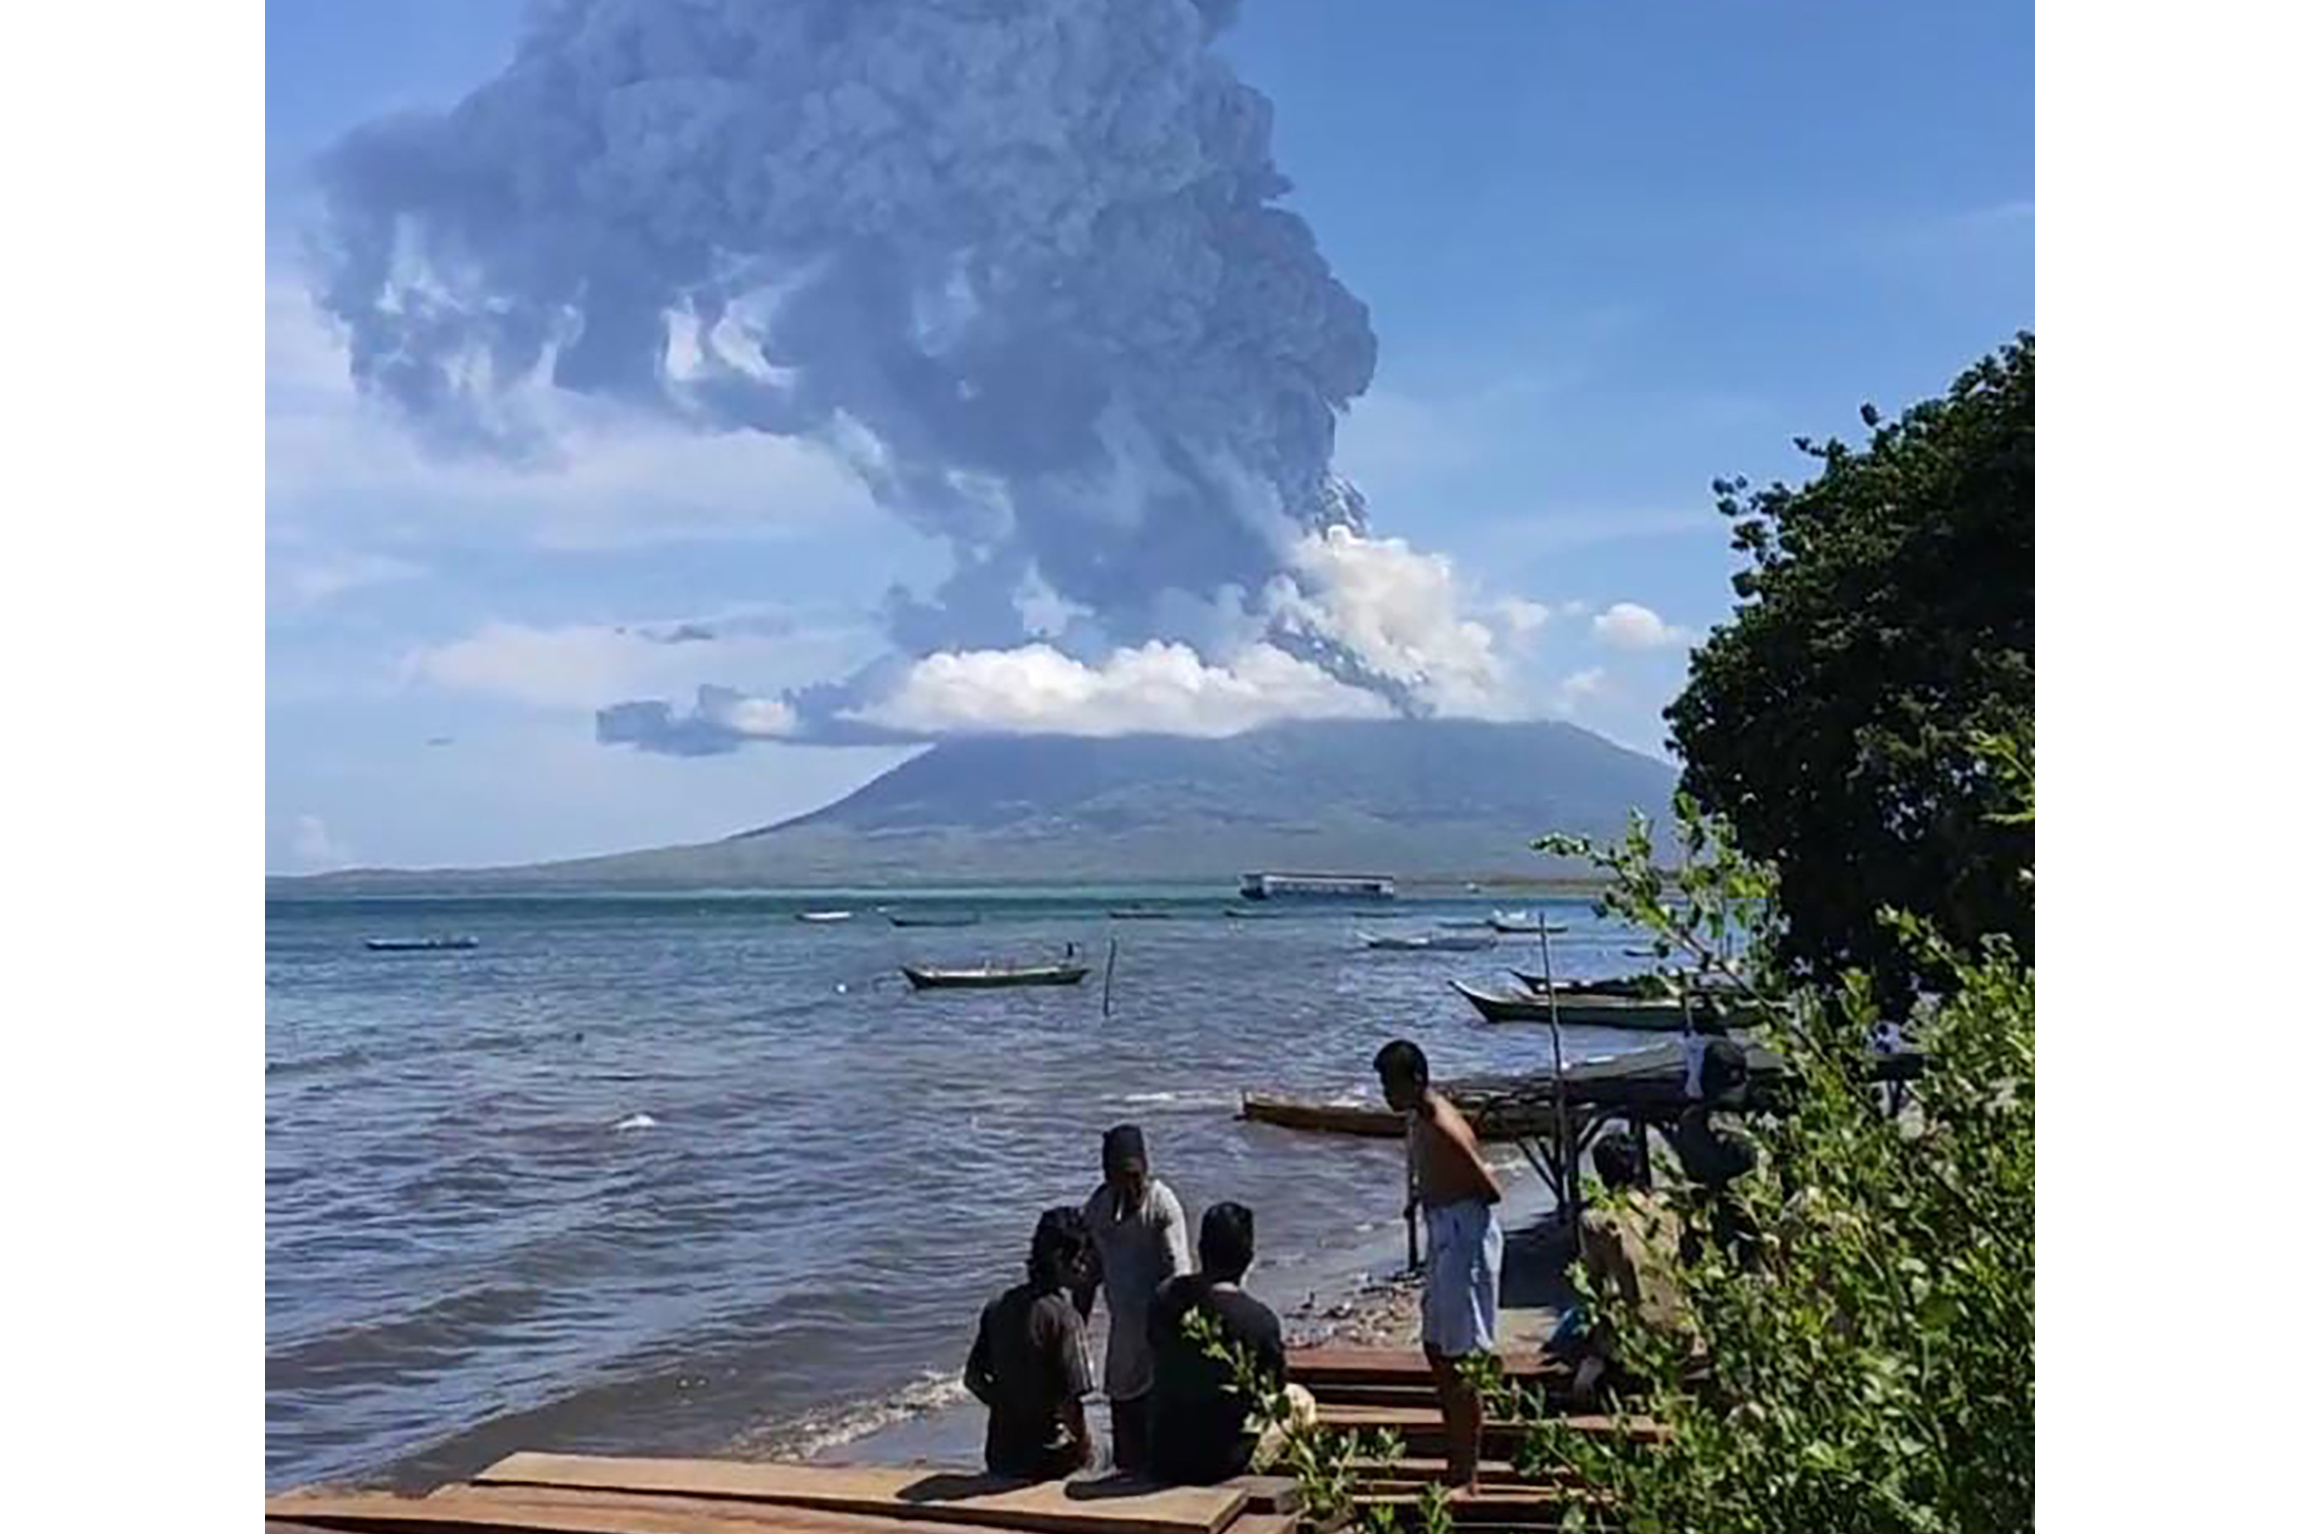 Volcano in Indonesia erupts; 2,000 700 evicted